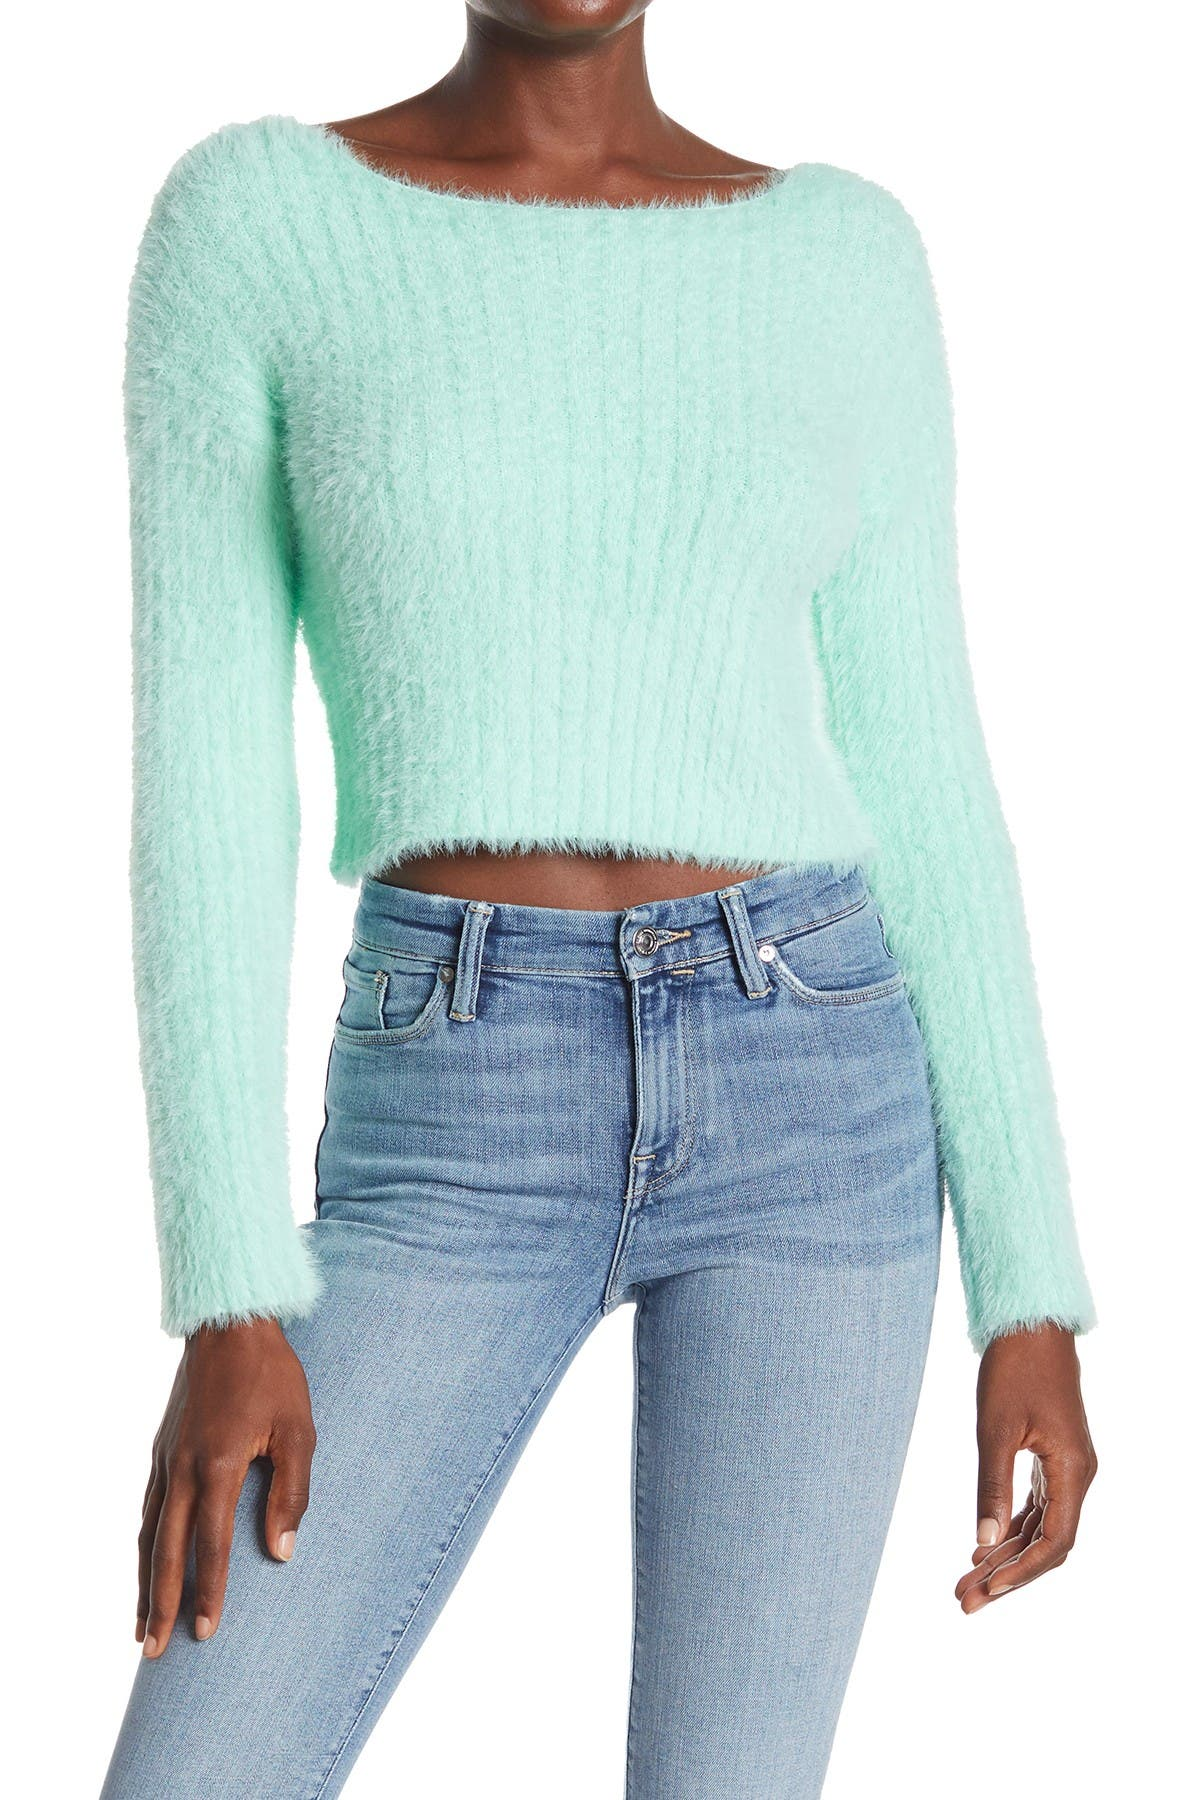 Image of HYFVE Fuzzy Cropped Sweater